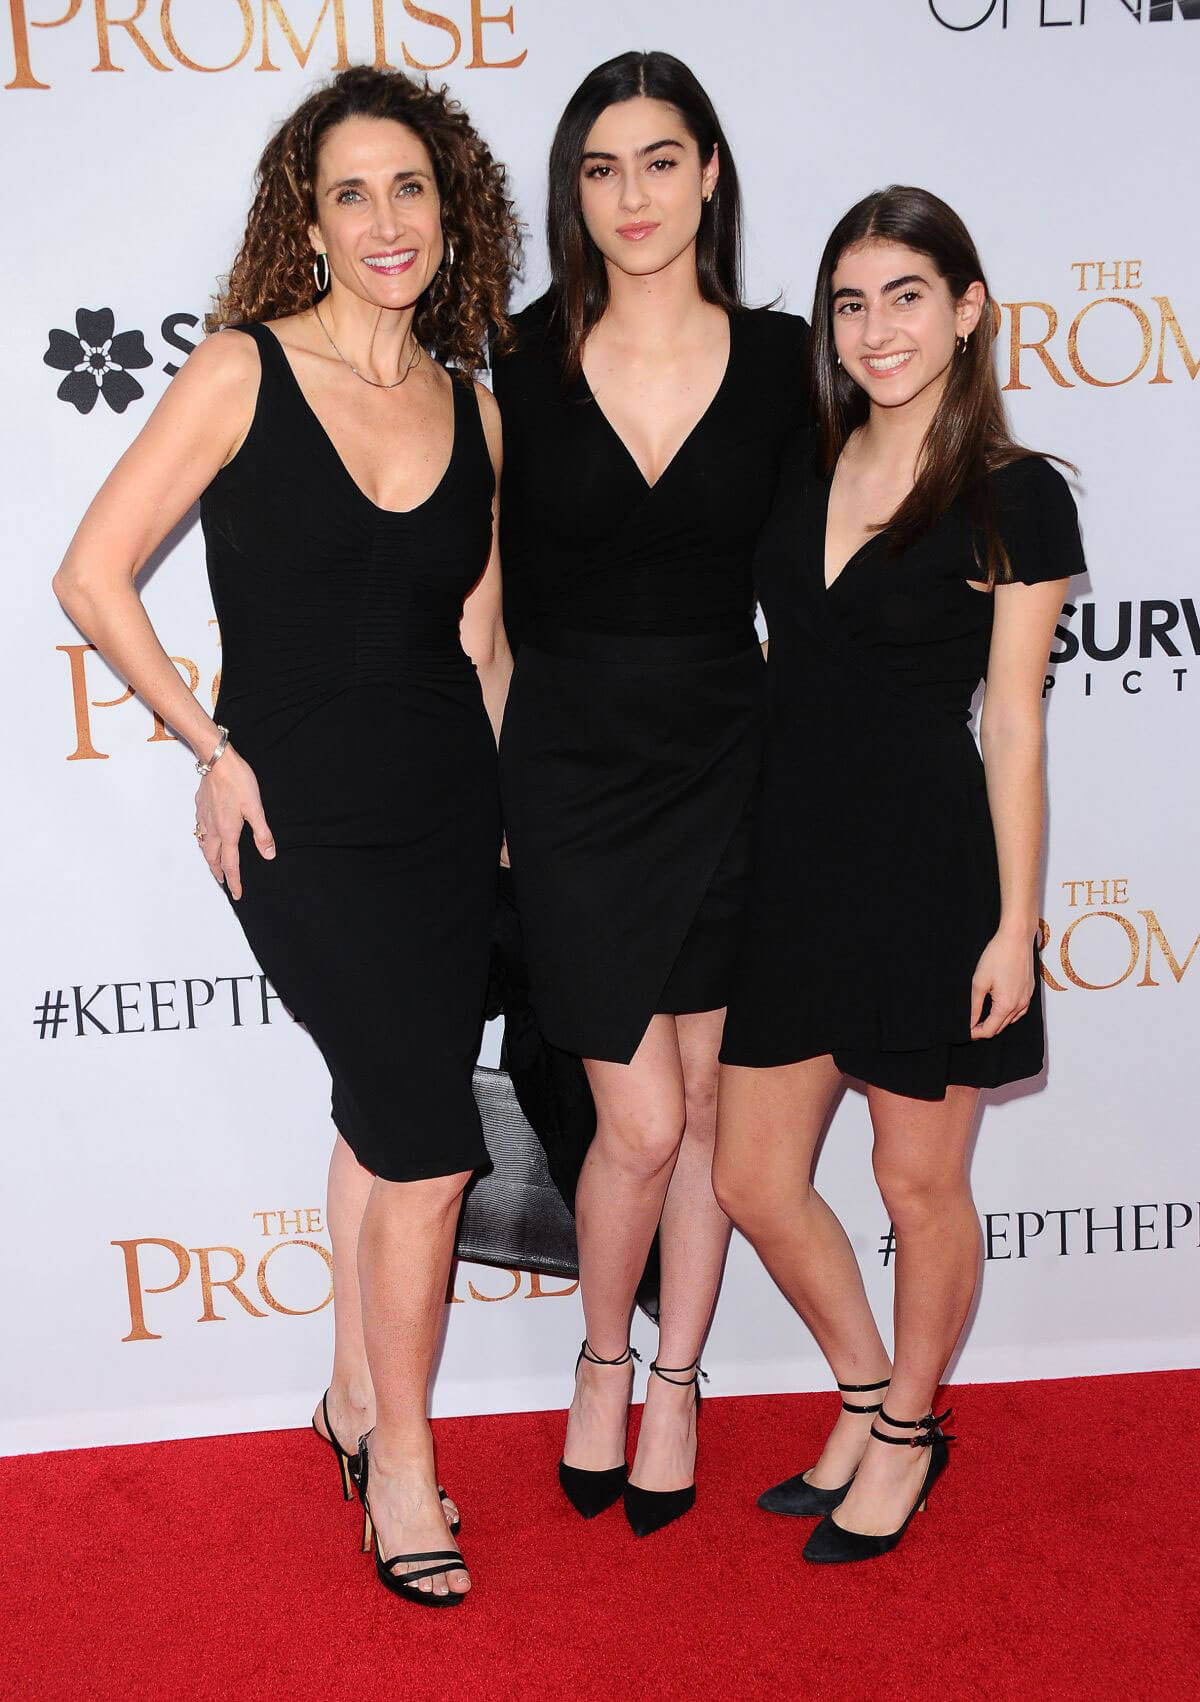 Melina Kanakaredes Stills at The Promise Premiere in Hollywood